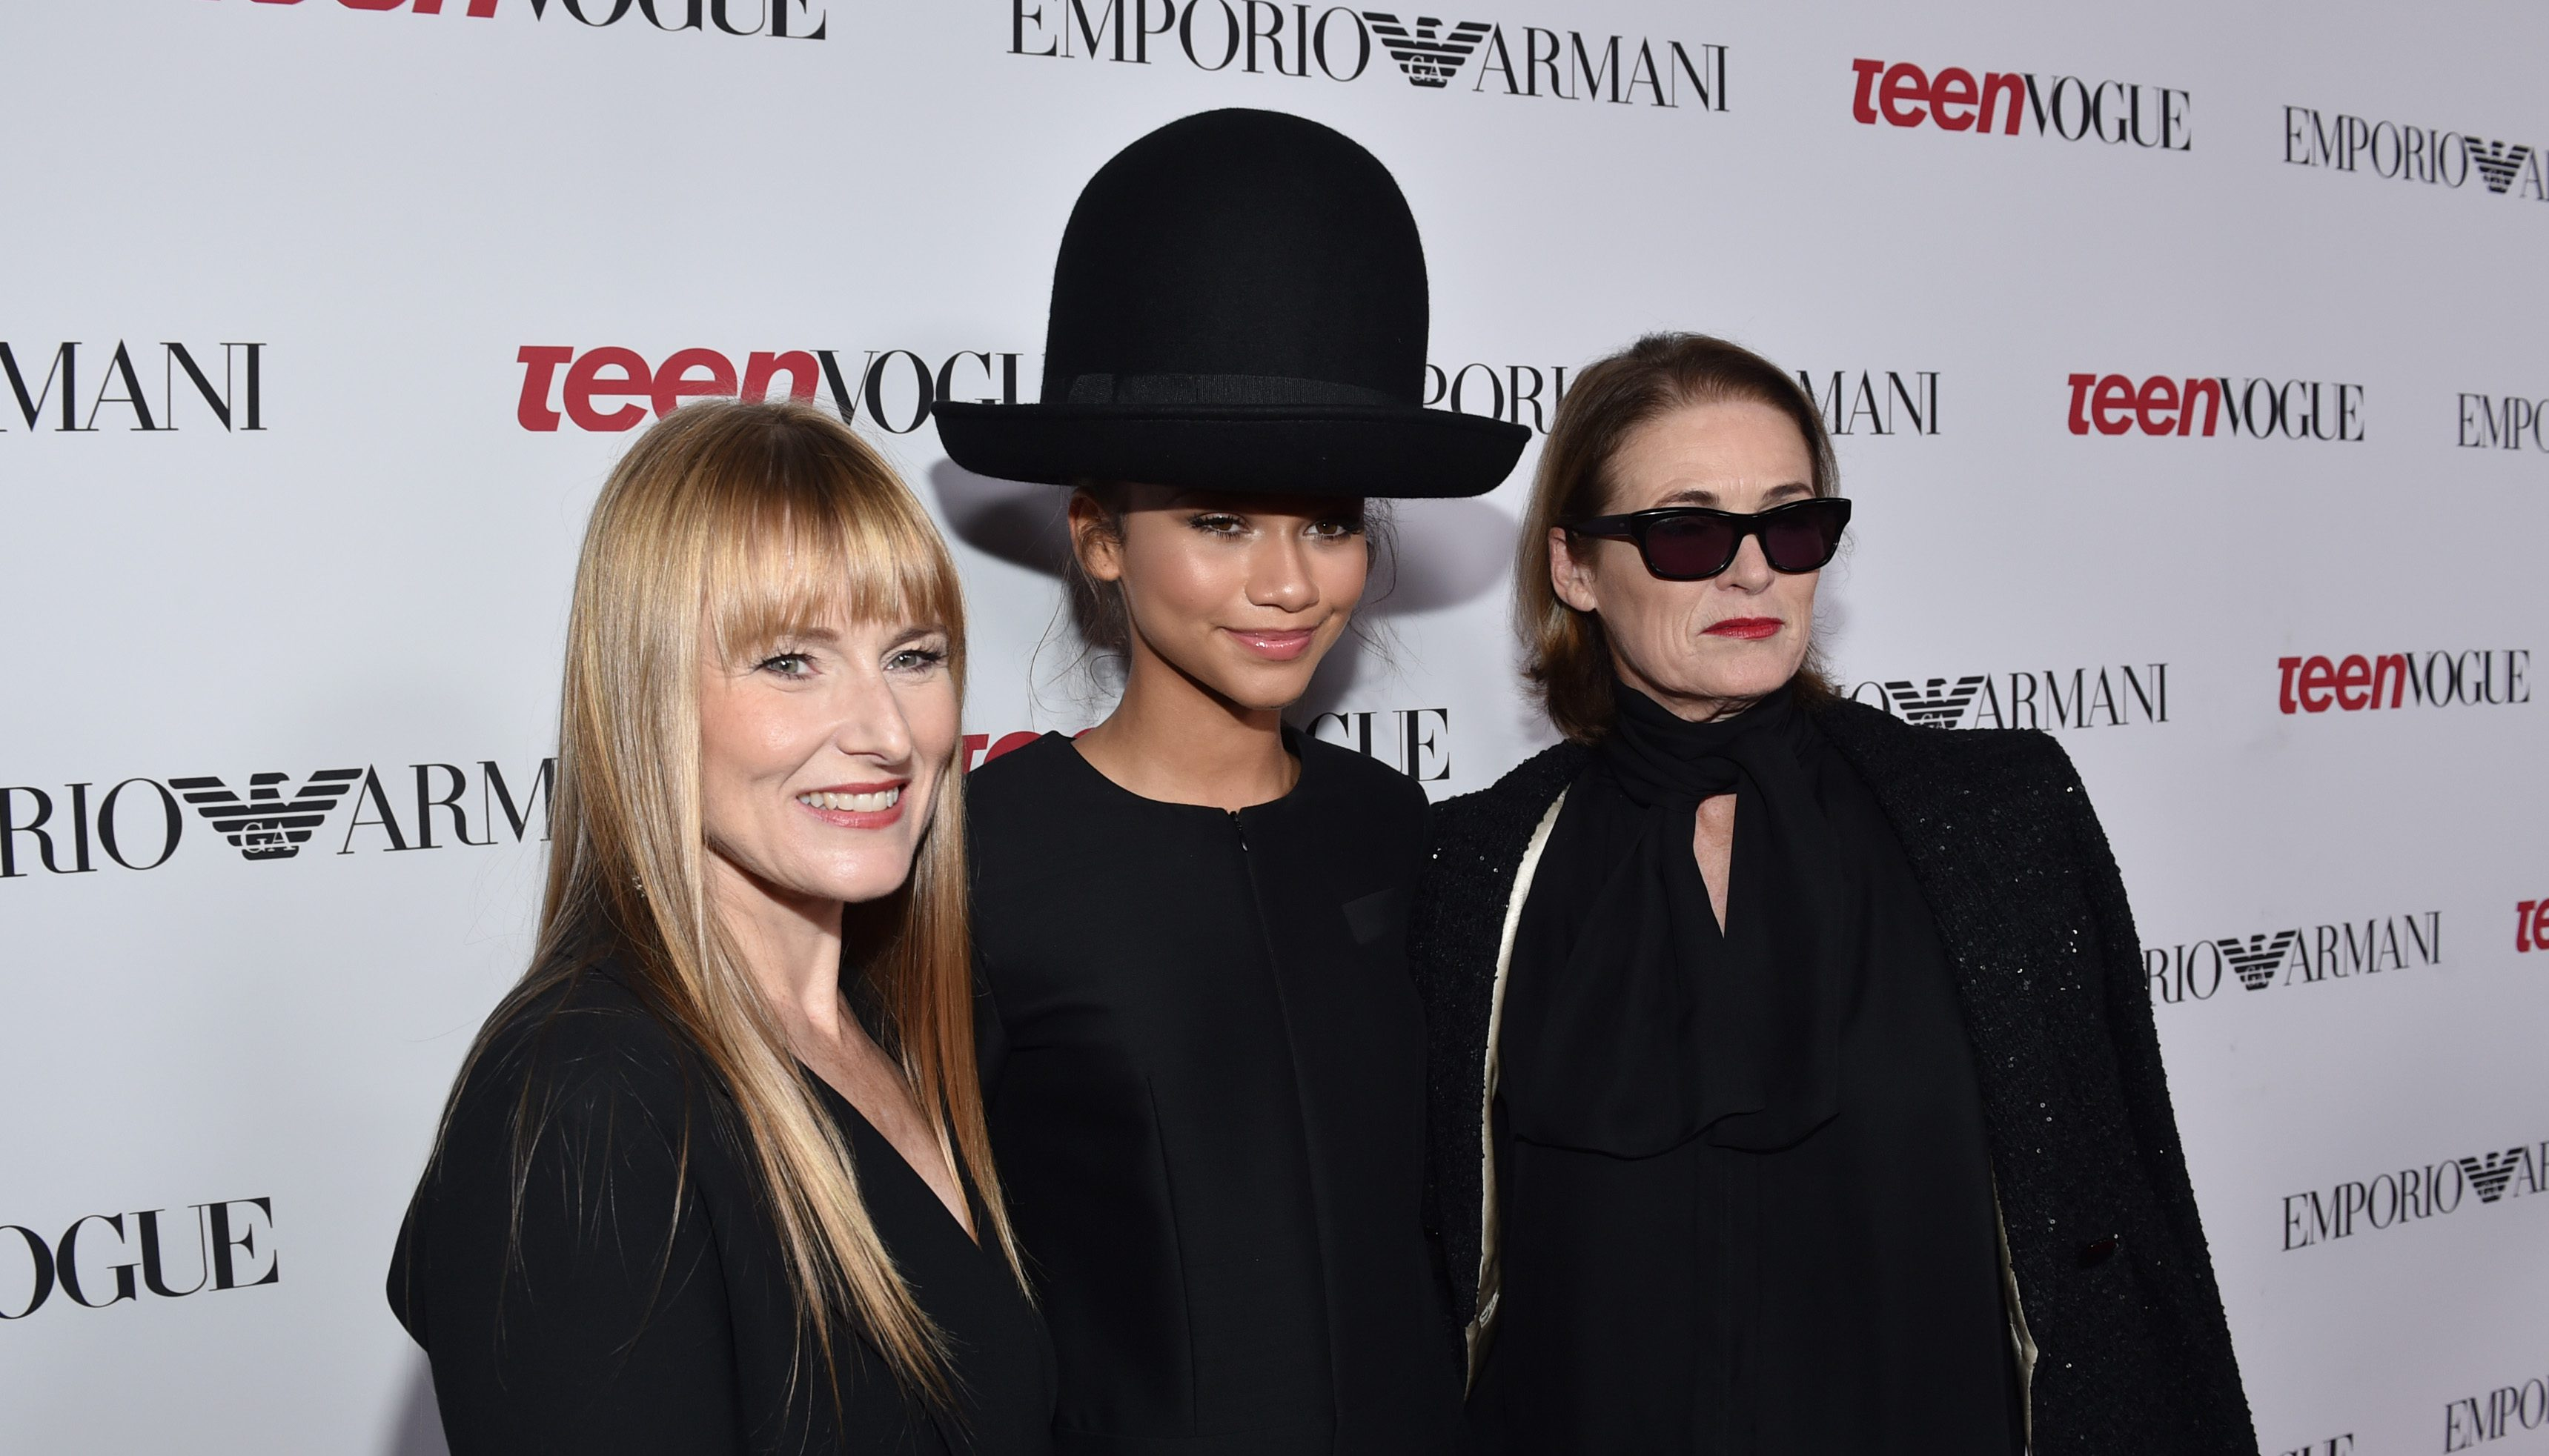 Amy Astley, and from left, Zendaya and Lisa Love arrive at Teen Vogue's Young Hollywood Party on Friday, Sept. 26, 2014, in Beverly Hills, Calif. (Photo by John Shearer/Invision/AP)